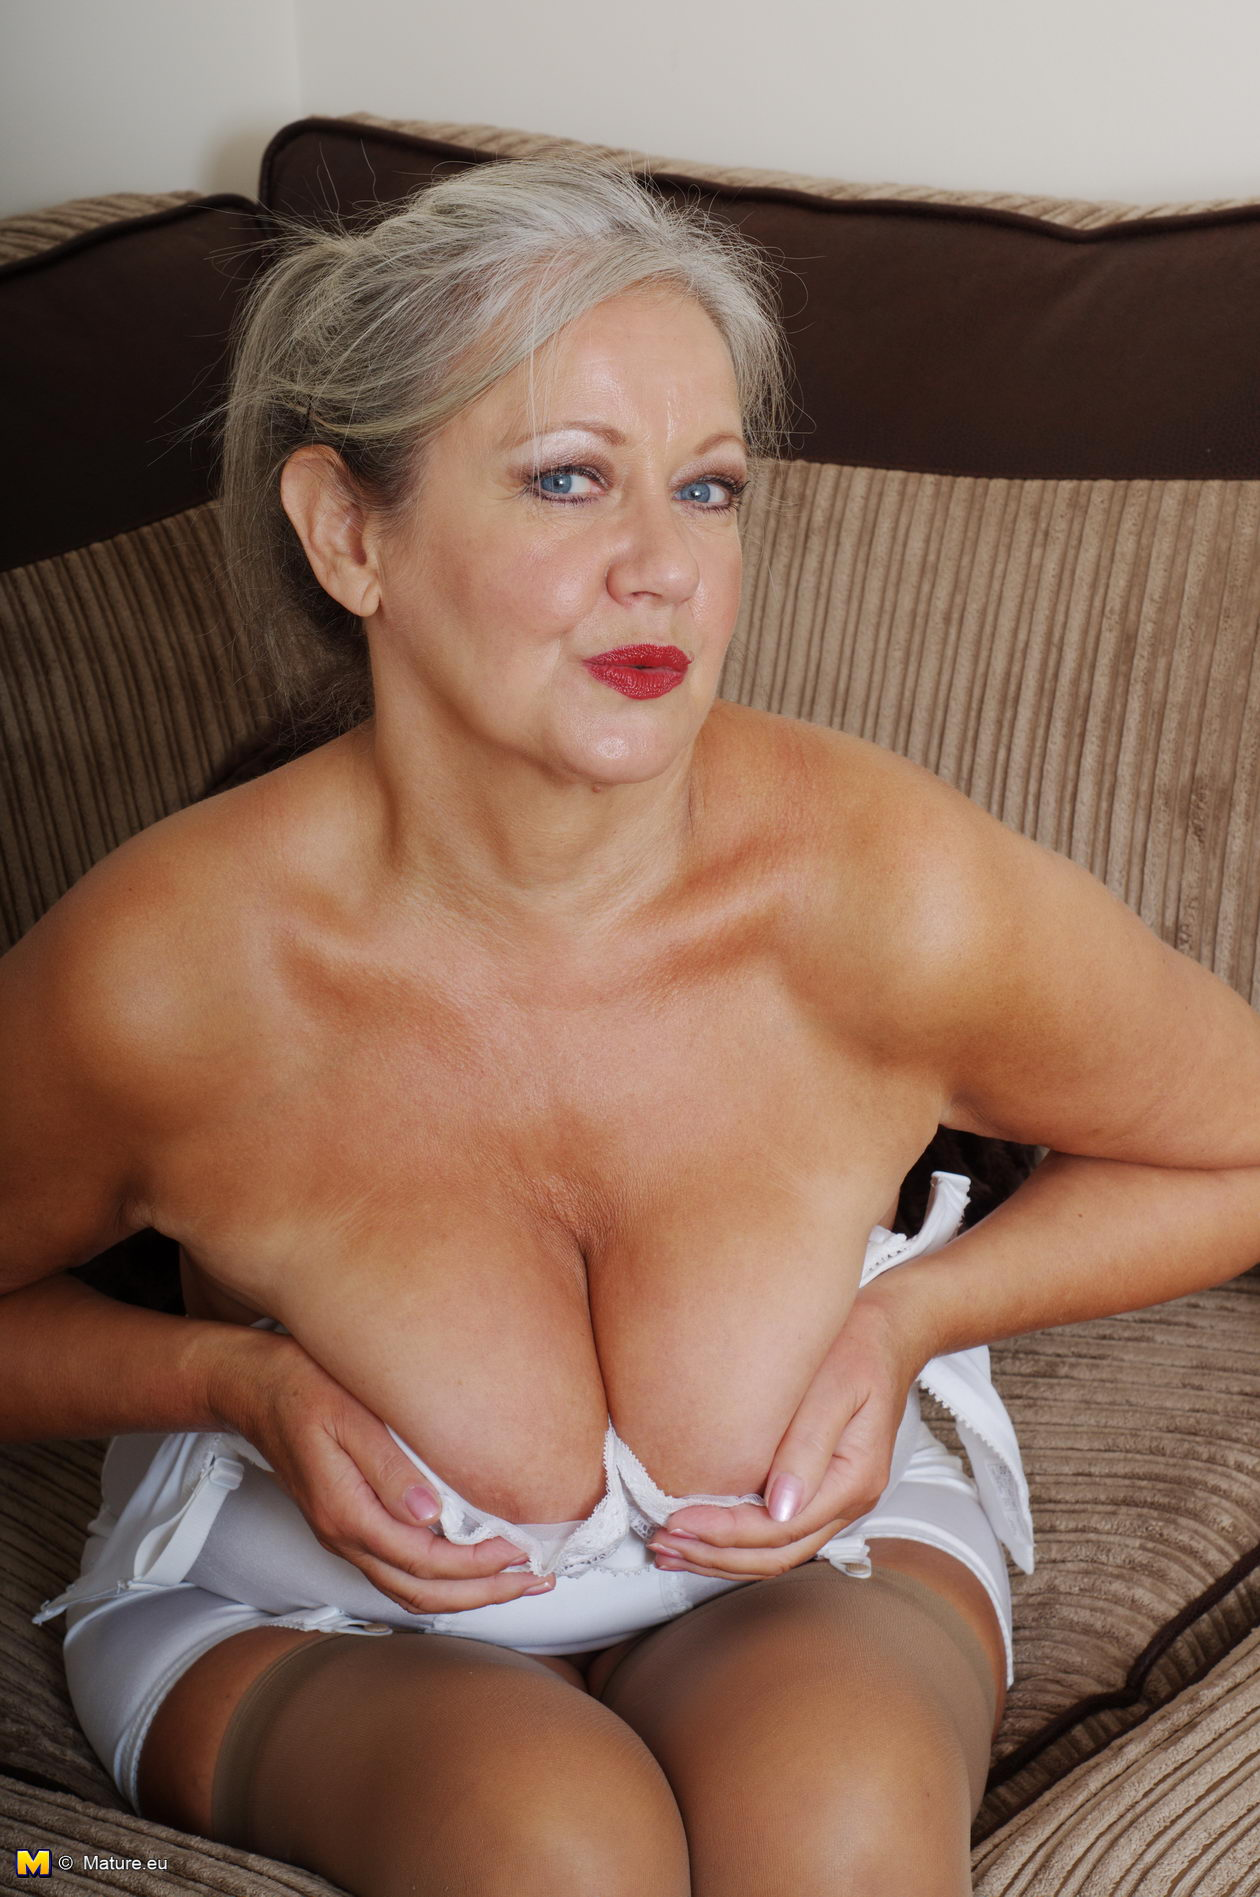 naughty mature slut getting very dirty bu herself - grannypornpics